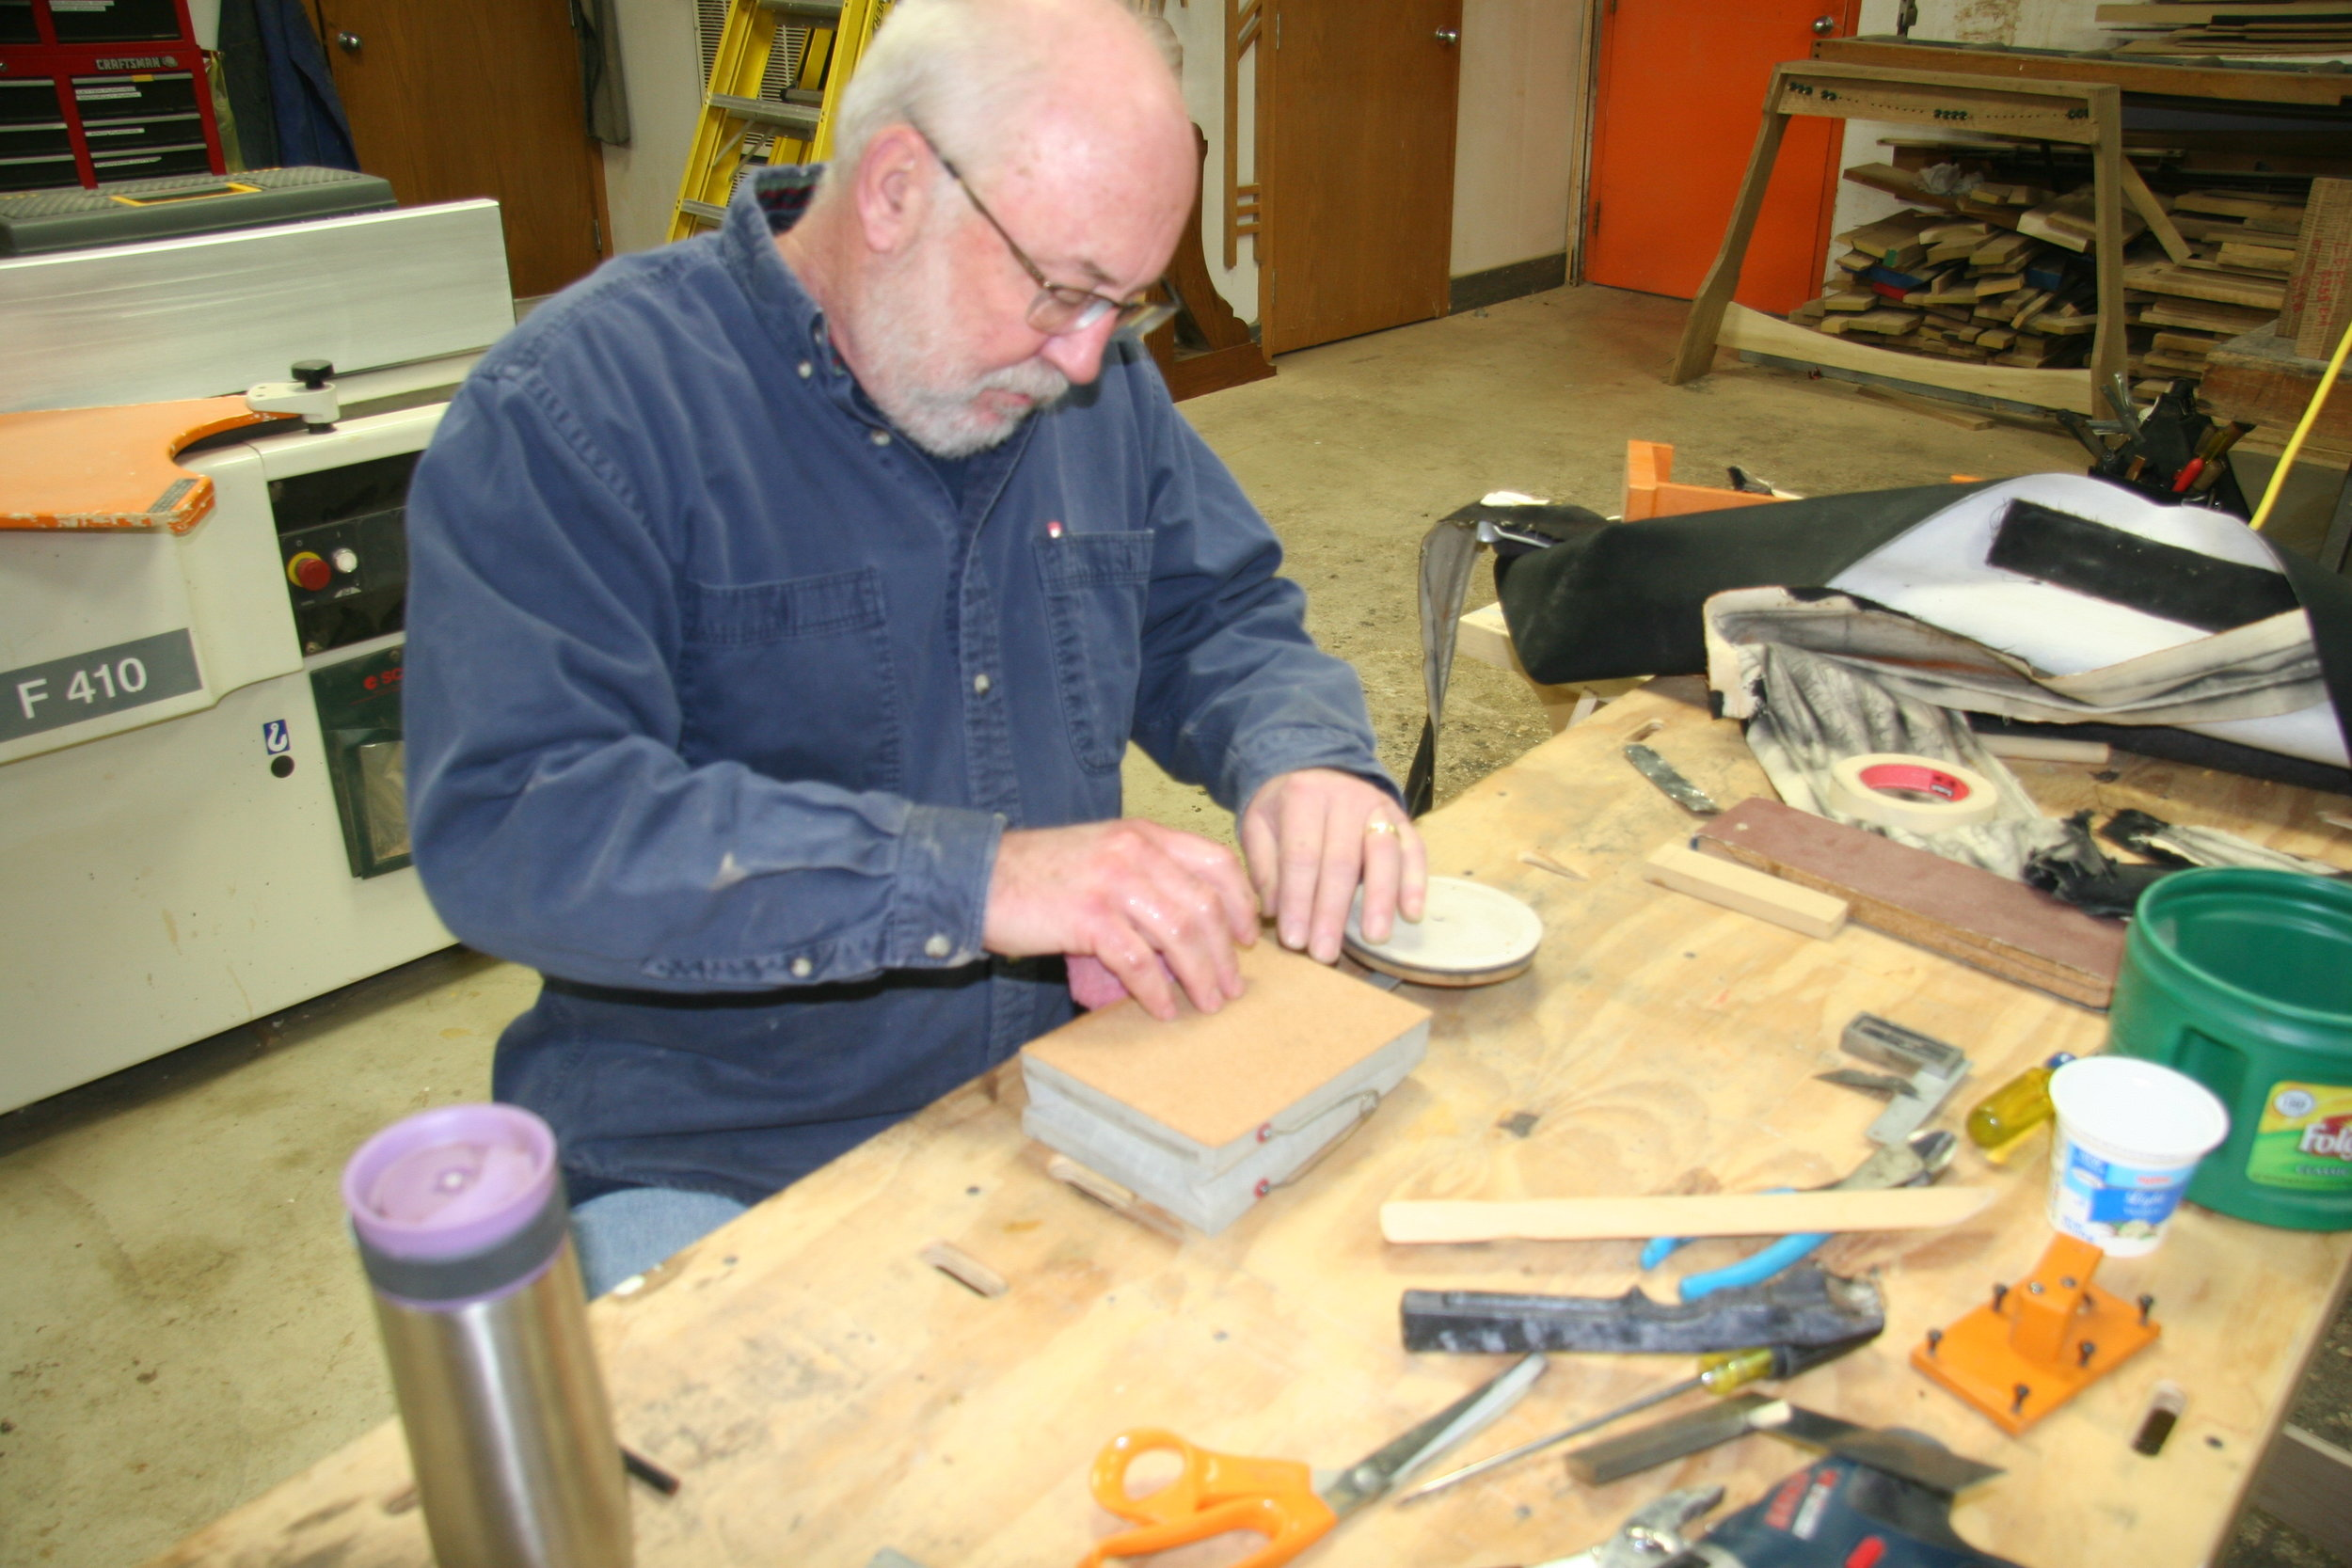 Dale rebuilding small wedge pneumatic for tremulant cutout.